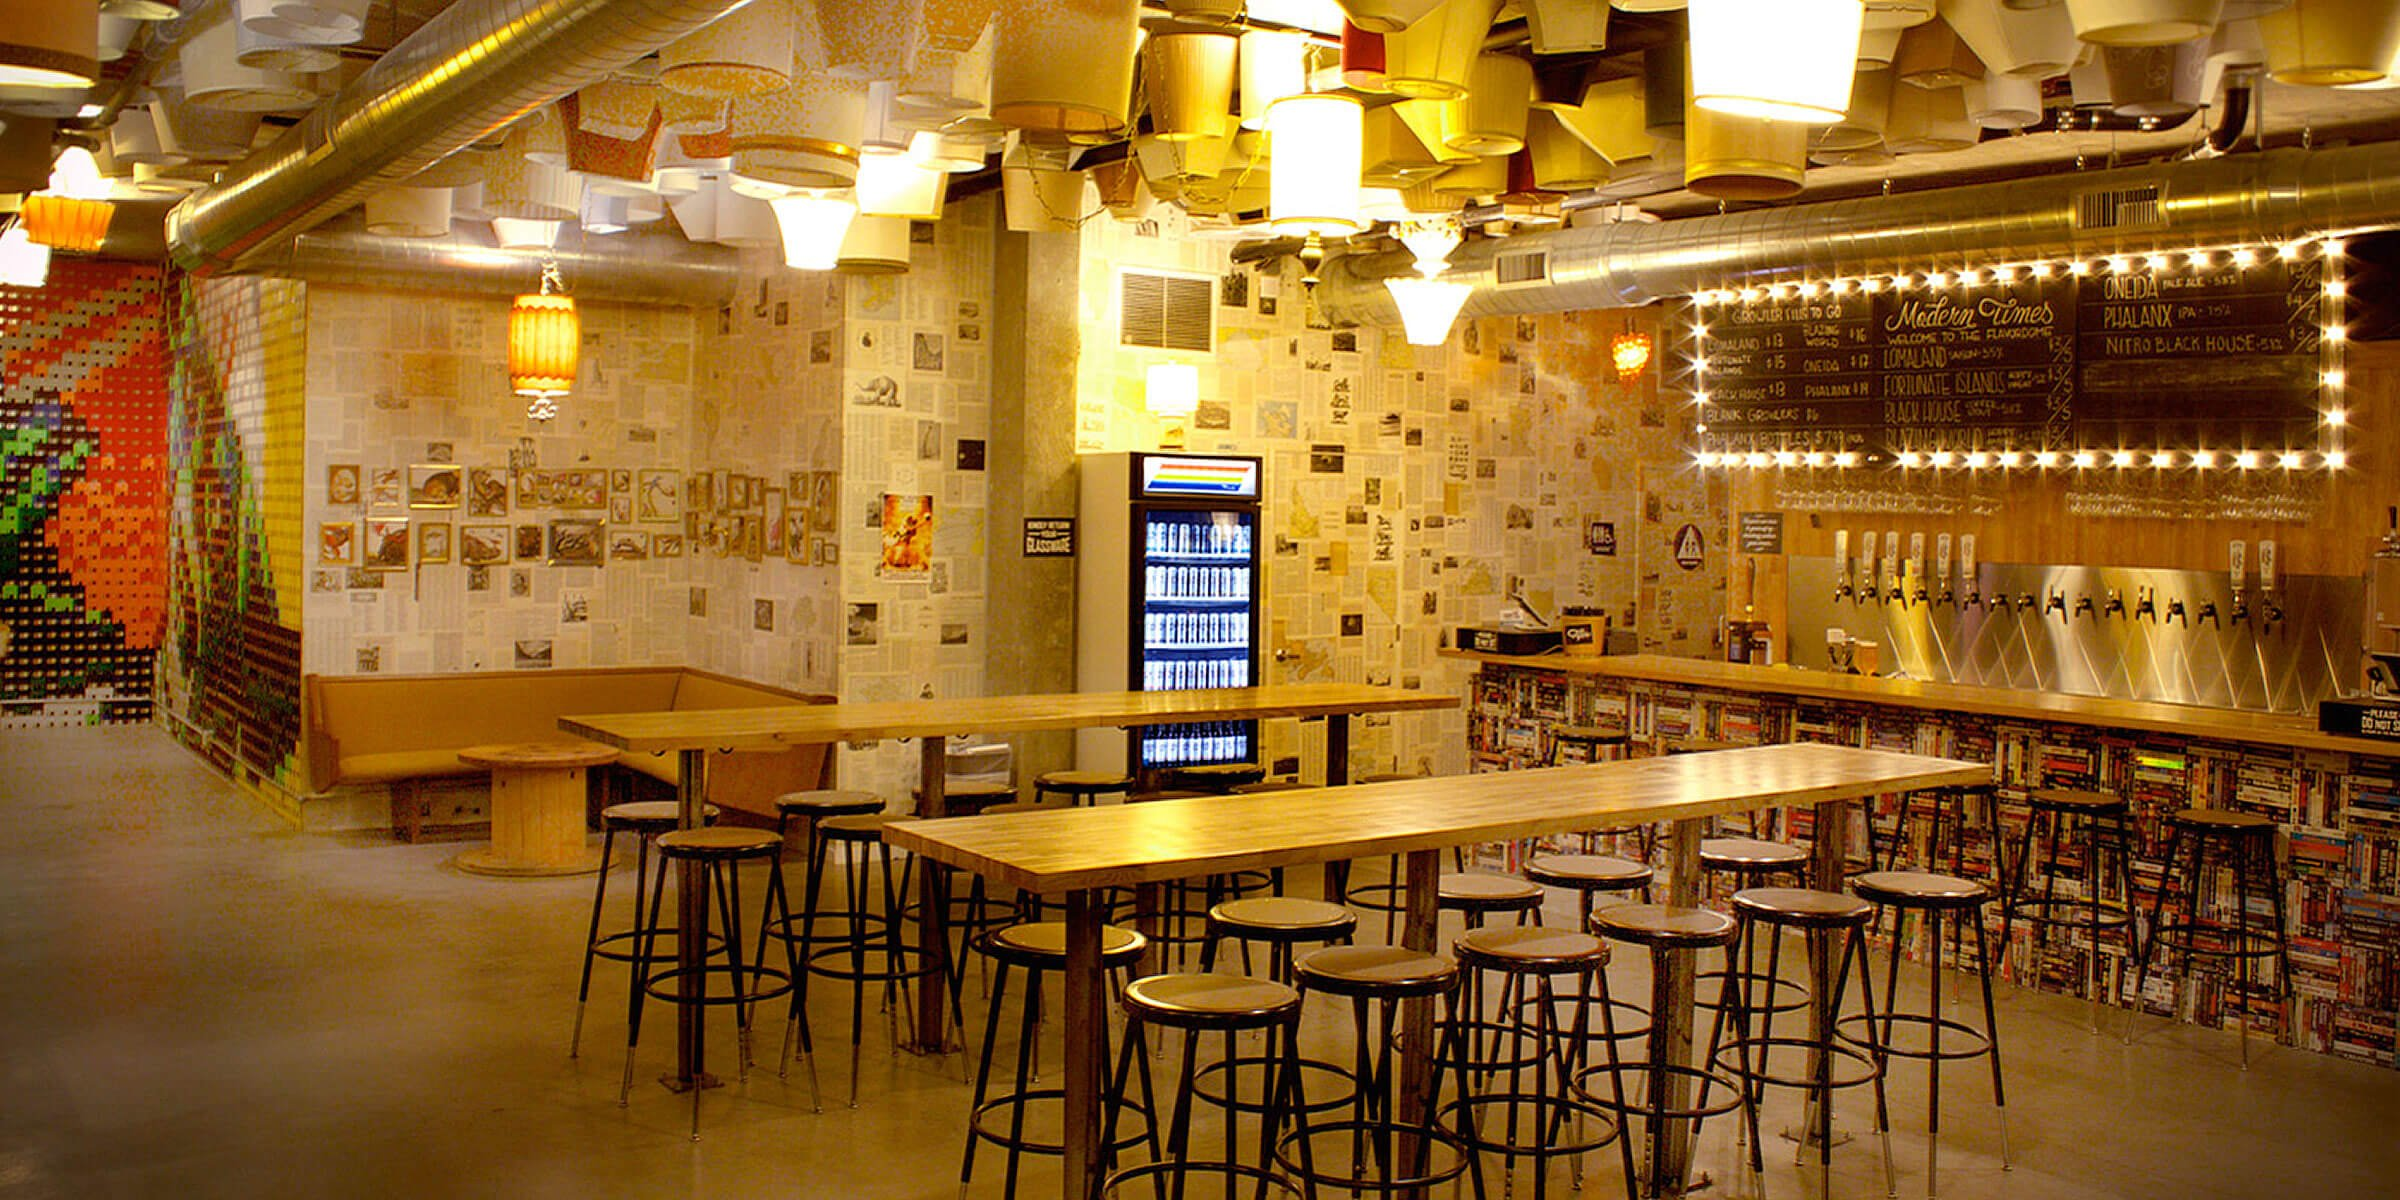 Inside the Modern Times Beer Flavordome in the North Park neighborhood of San Diego, California